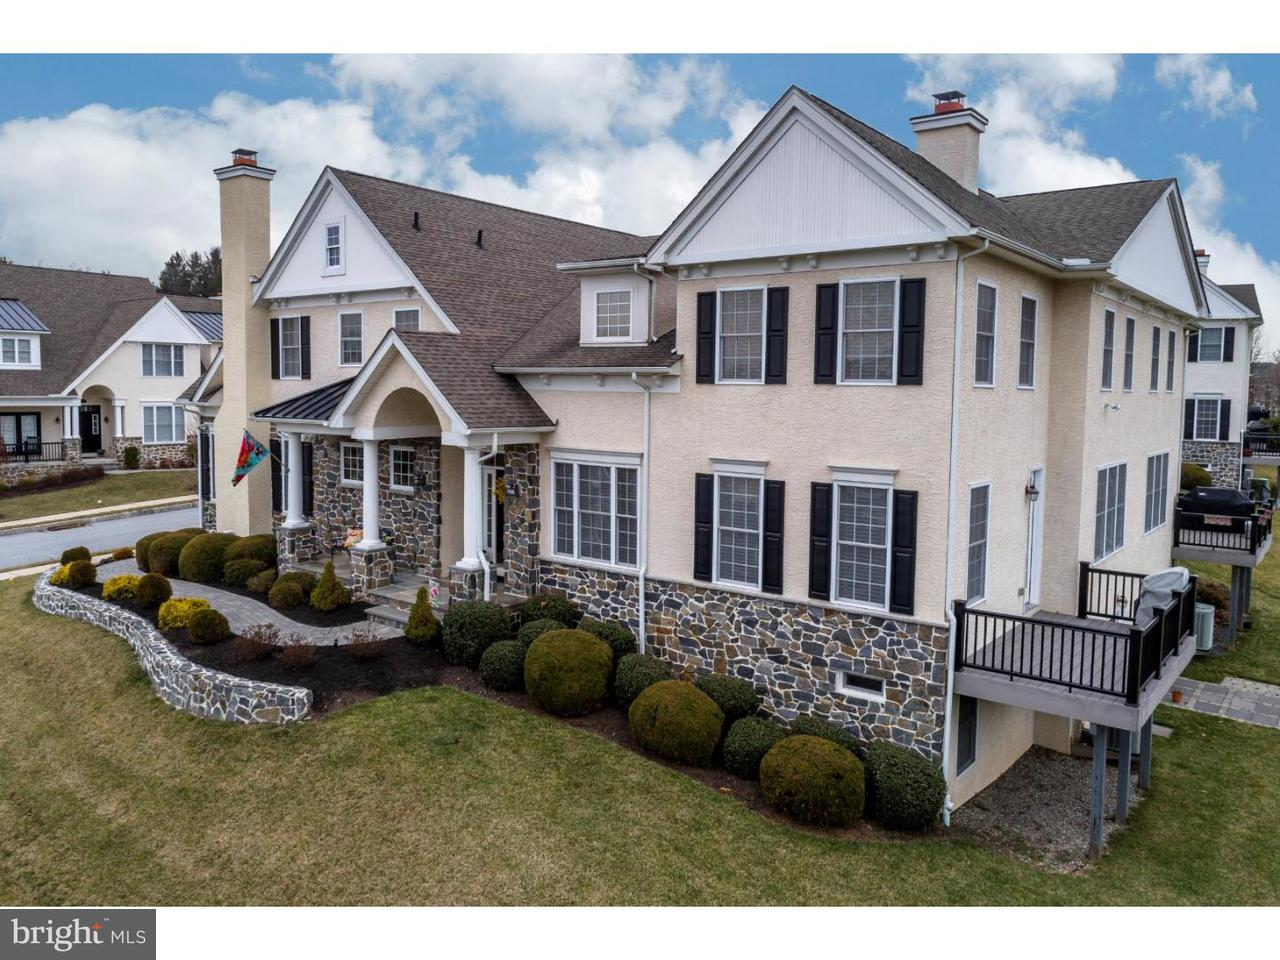 227  Caleb West Chester, PA 19382